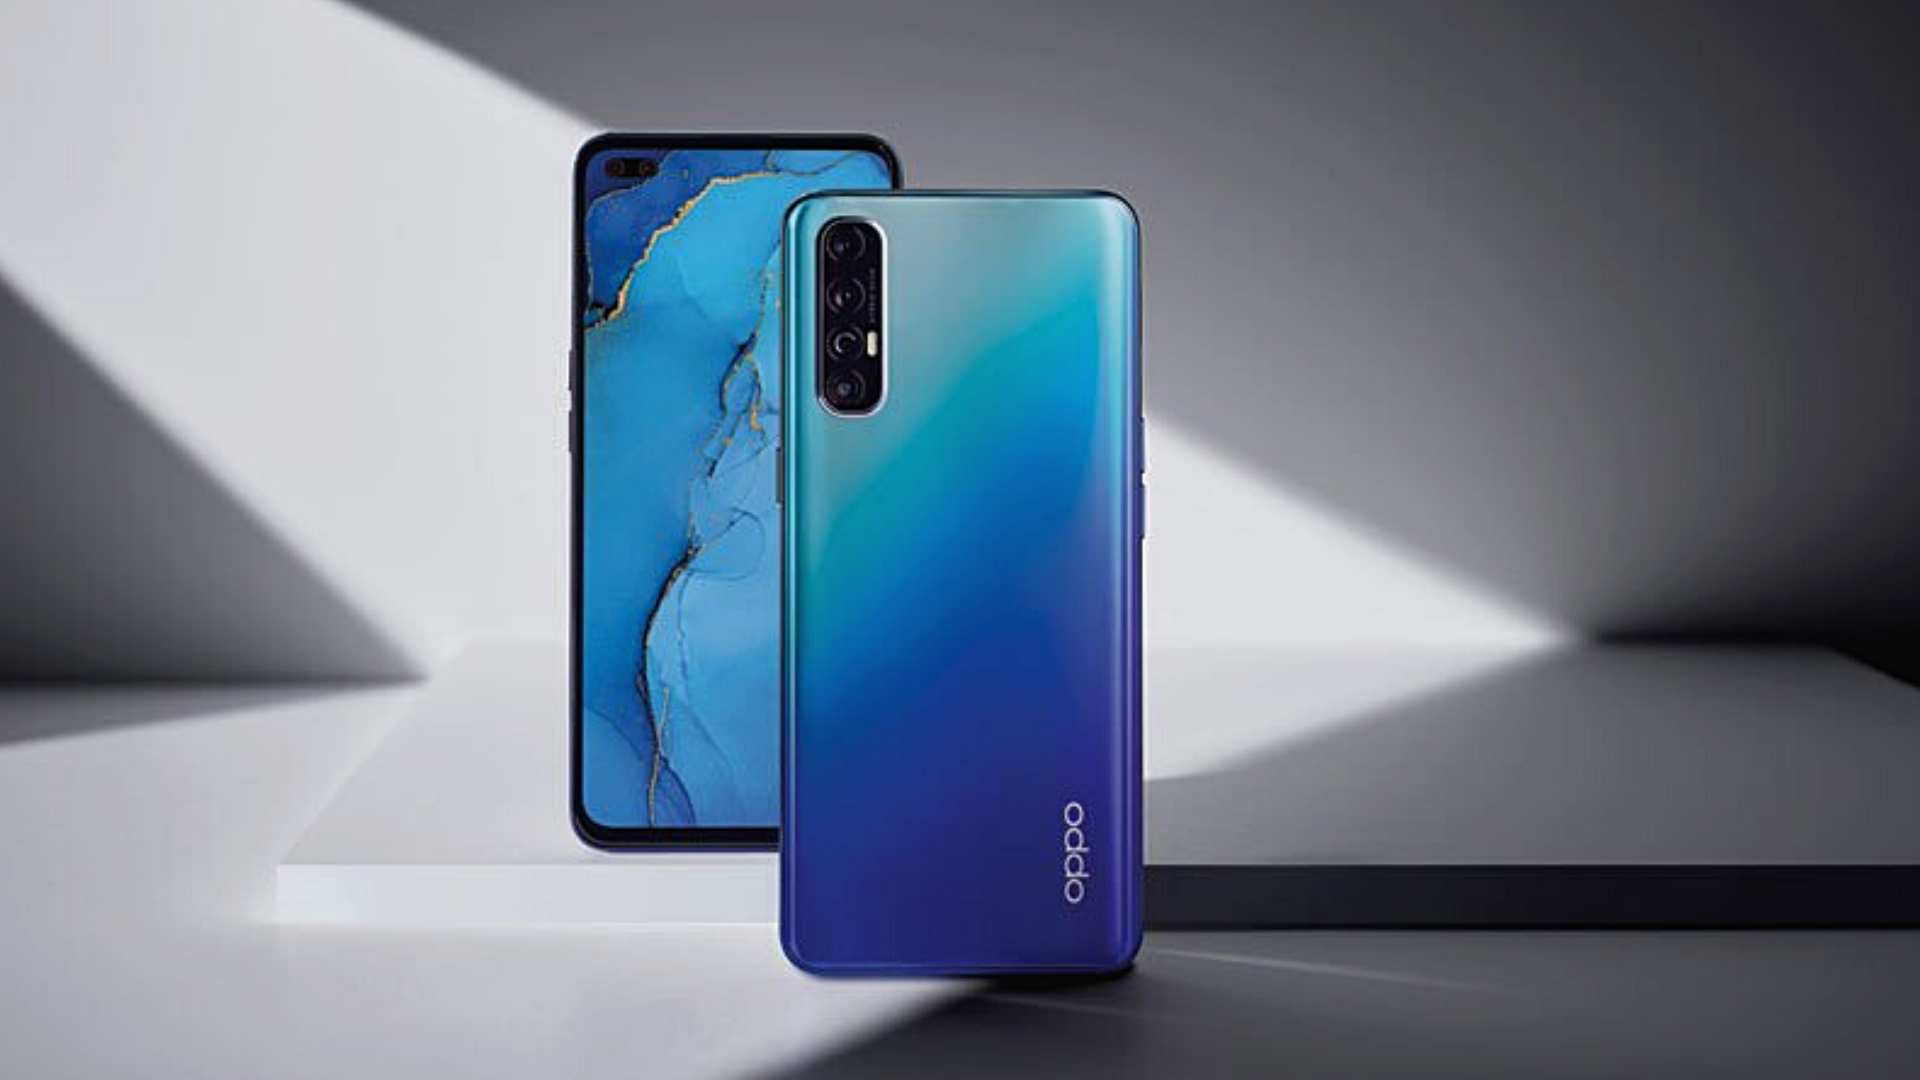 What is Oppo Reno?